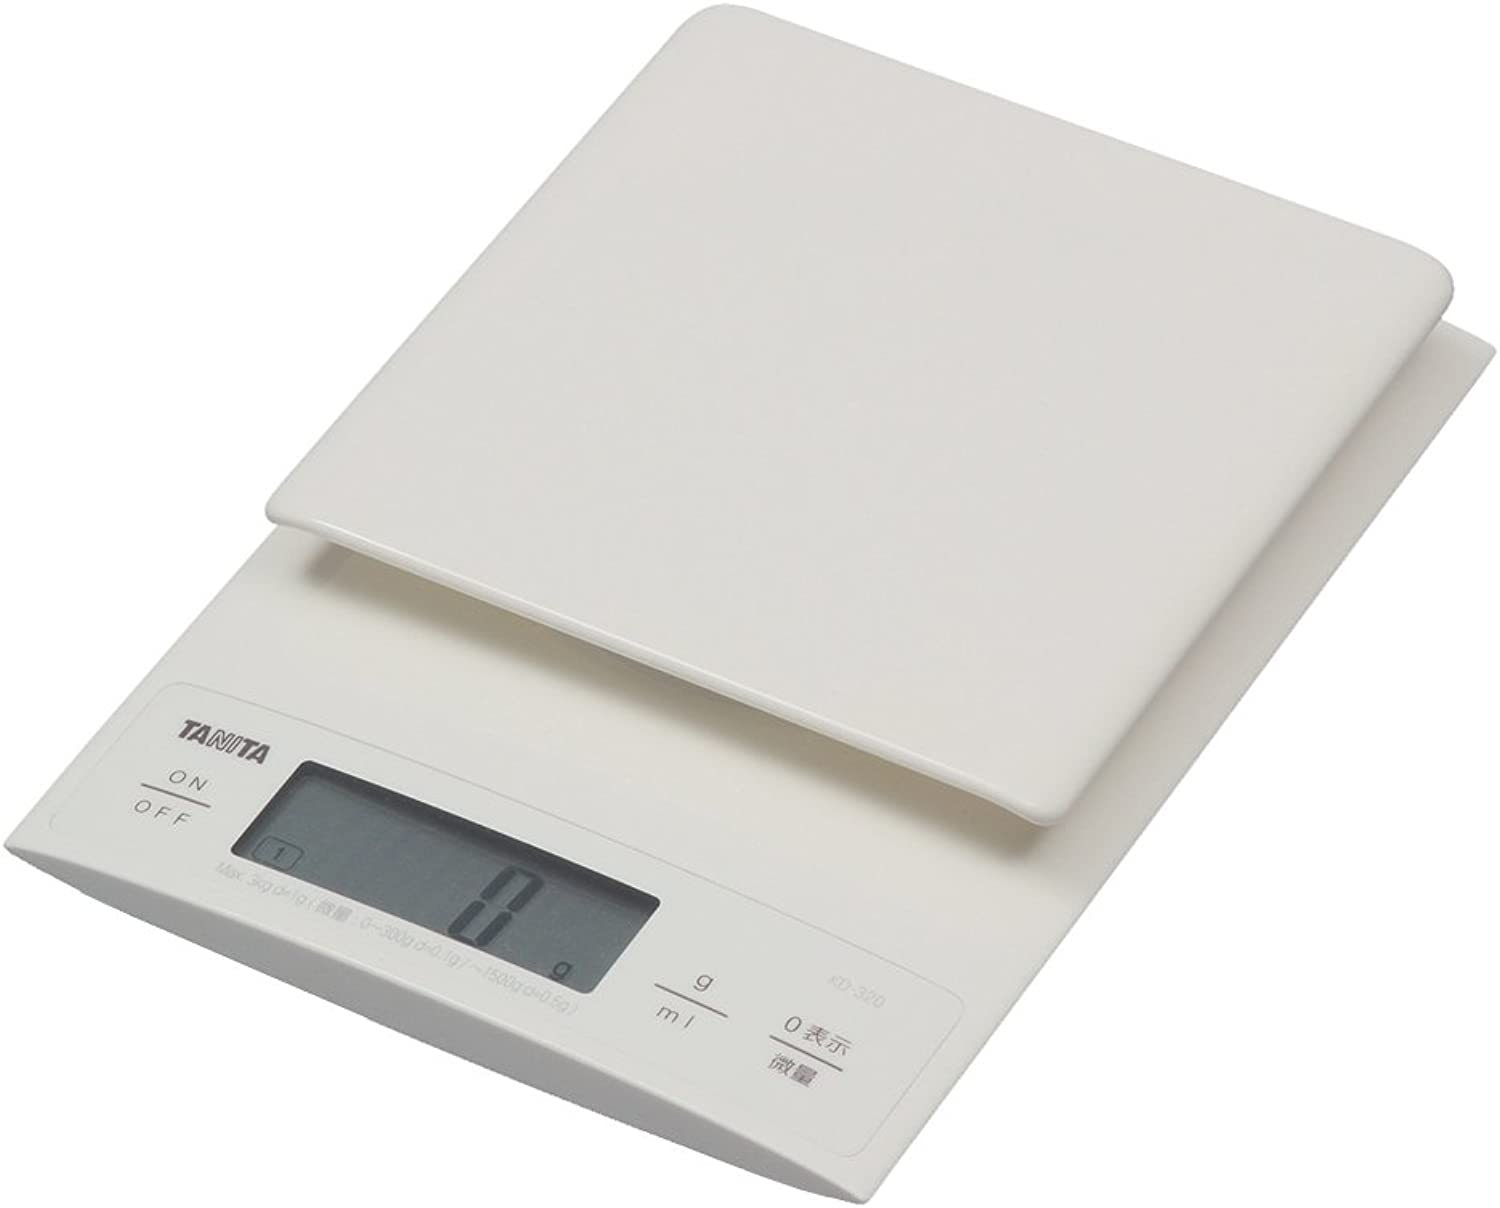 TANITADigital cooking scale【Also useful for making bread0.1g unitHigh accuracyWeighing up to3kg】WhiteKD-320-WH